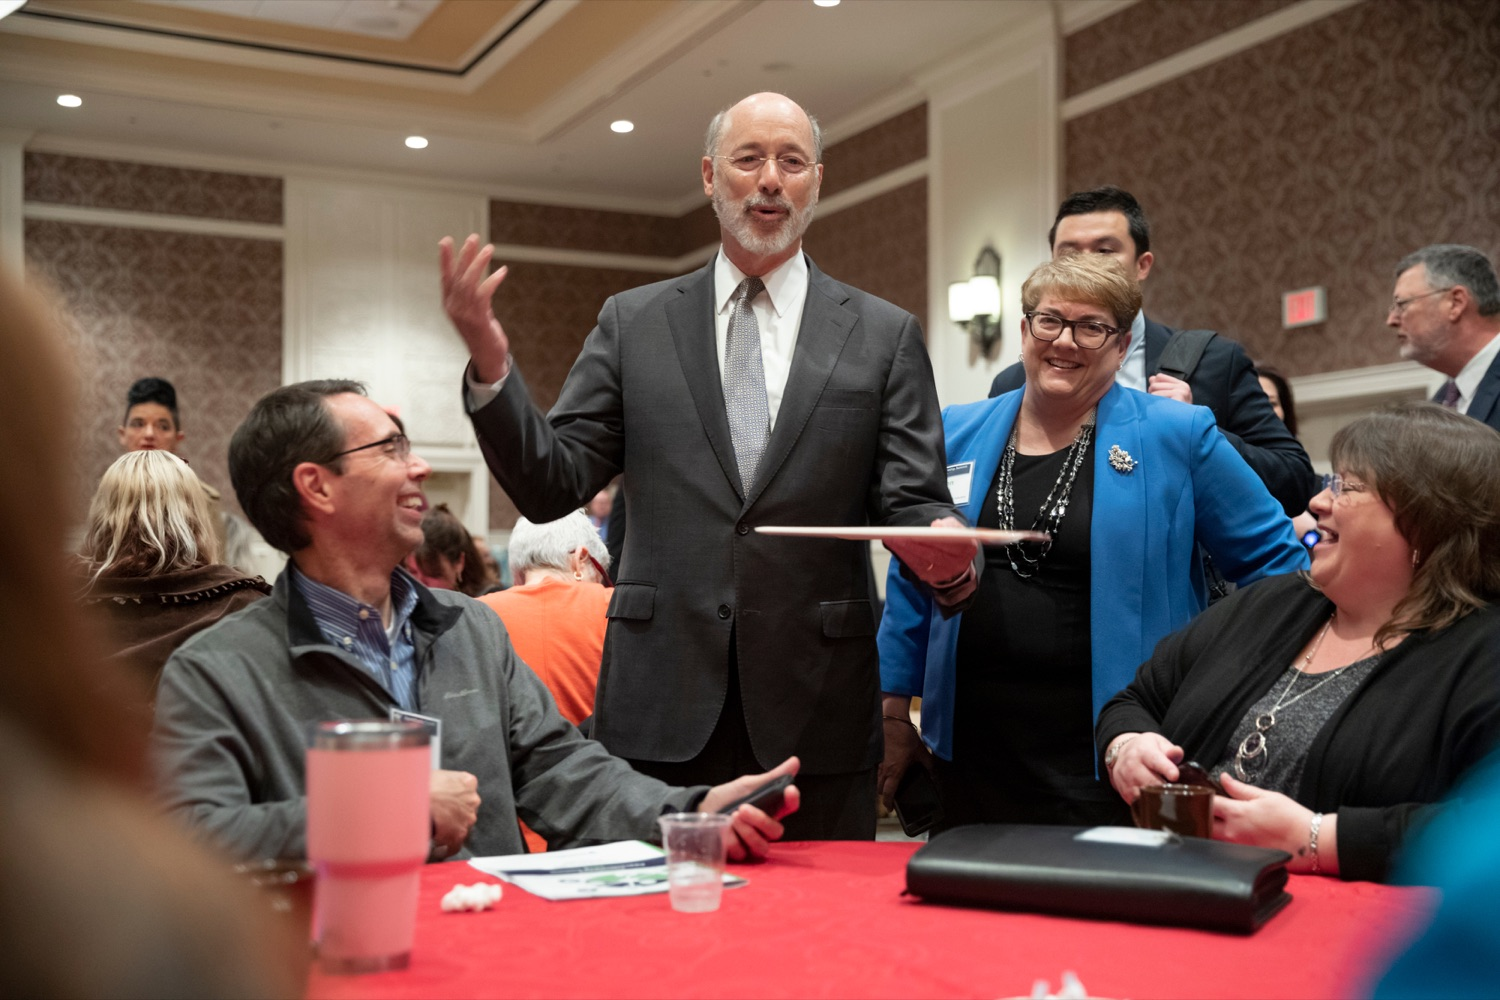 """<a href=""""http://filesource.abacast.com/commonwealthofpa/photo/17520_LandI_Apprenticeships_NK_012.JPG"""" target=""""_blank"""">⇣Download Photo<br></a>Pennsylvania Governor Tom Wolf talks with people during the 2019 Pennsylvania Apprenticeship Summit at Hershey Lodge on Thursday, October 31, 2019."""